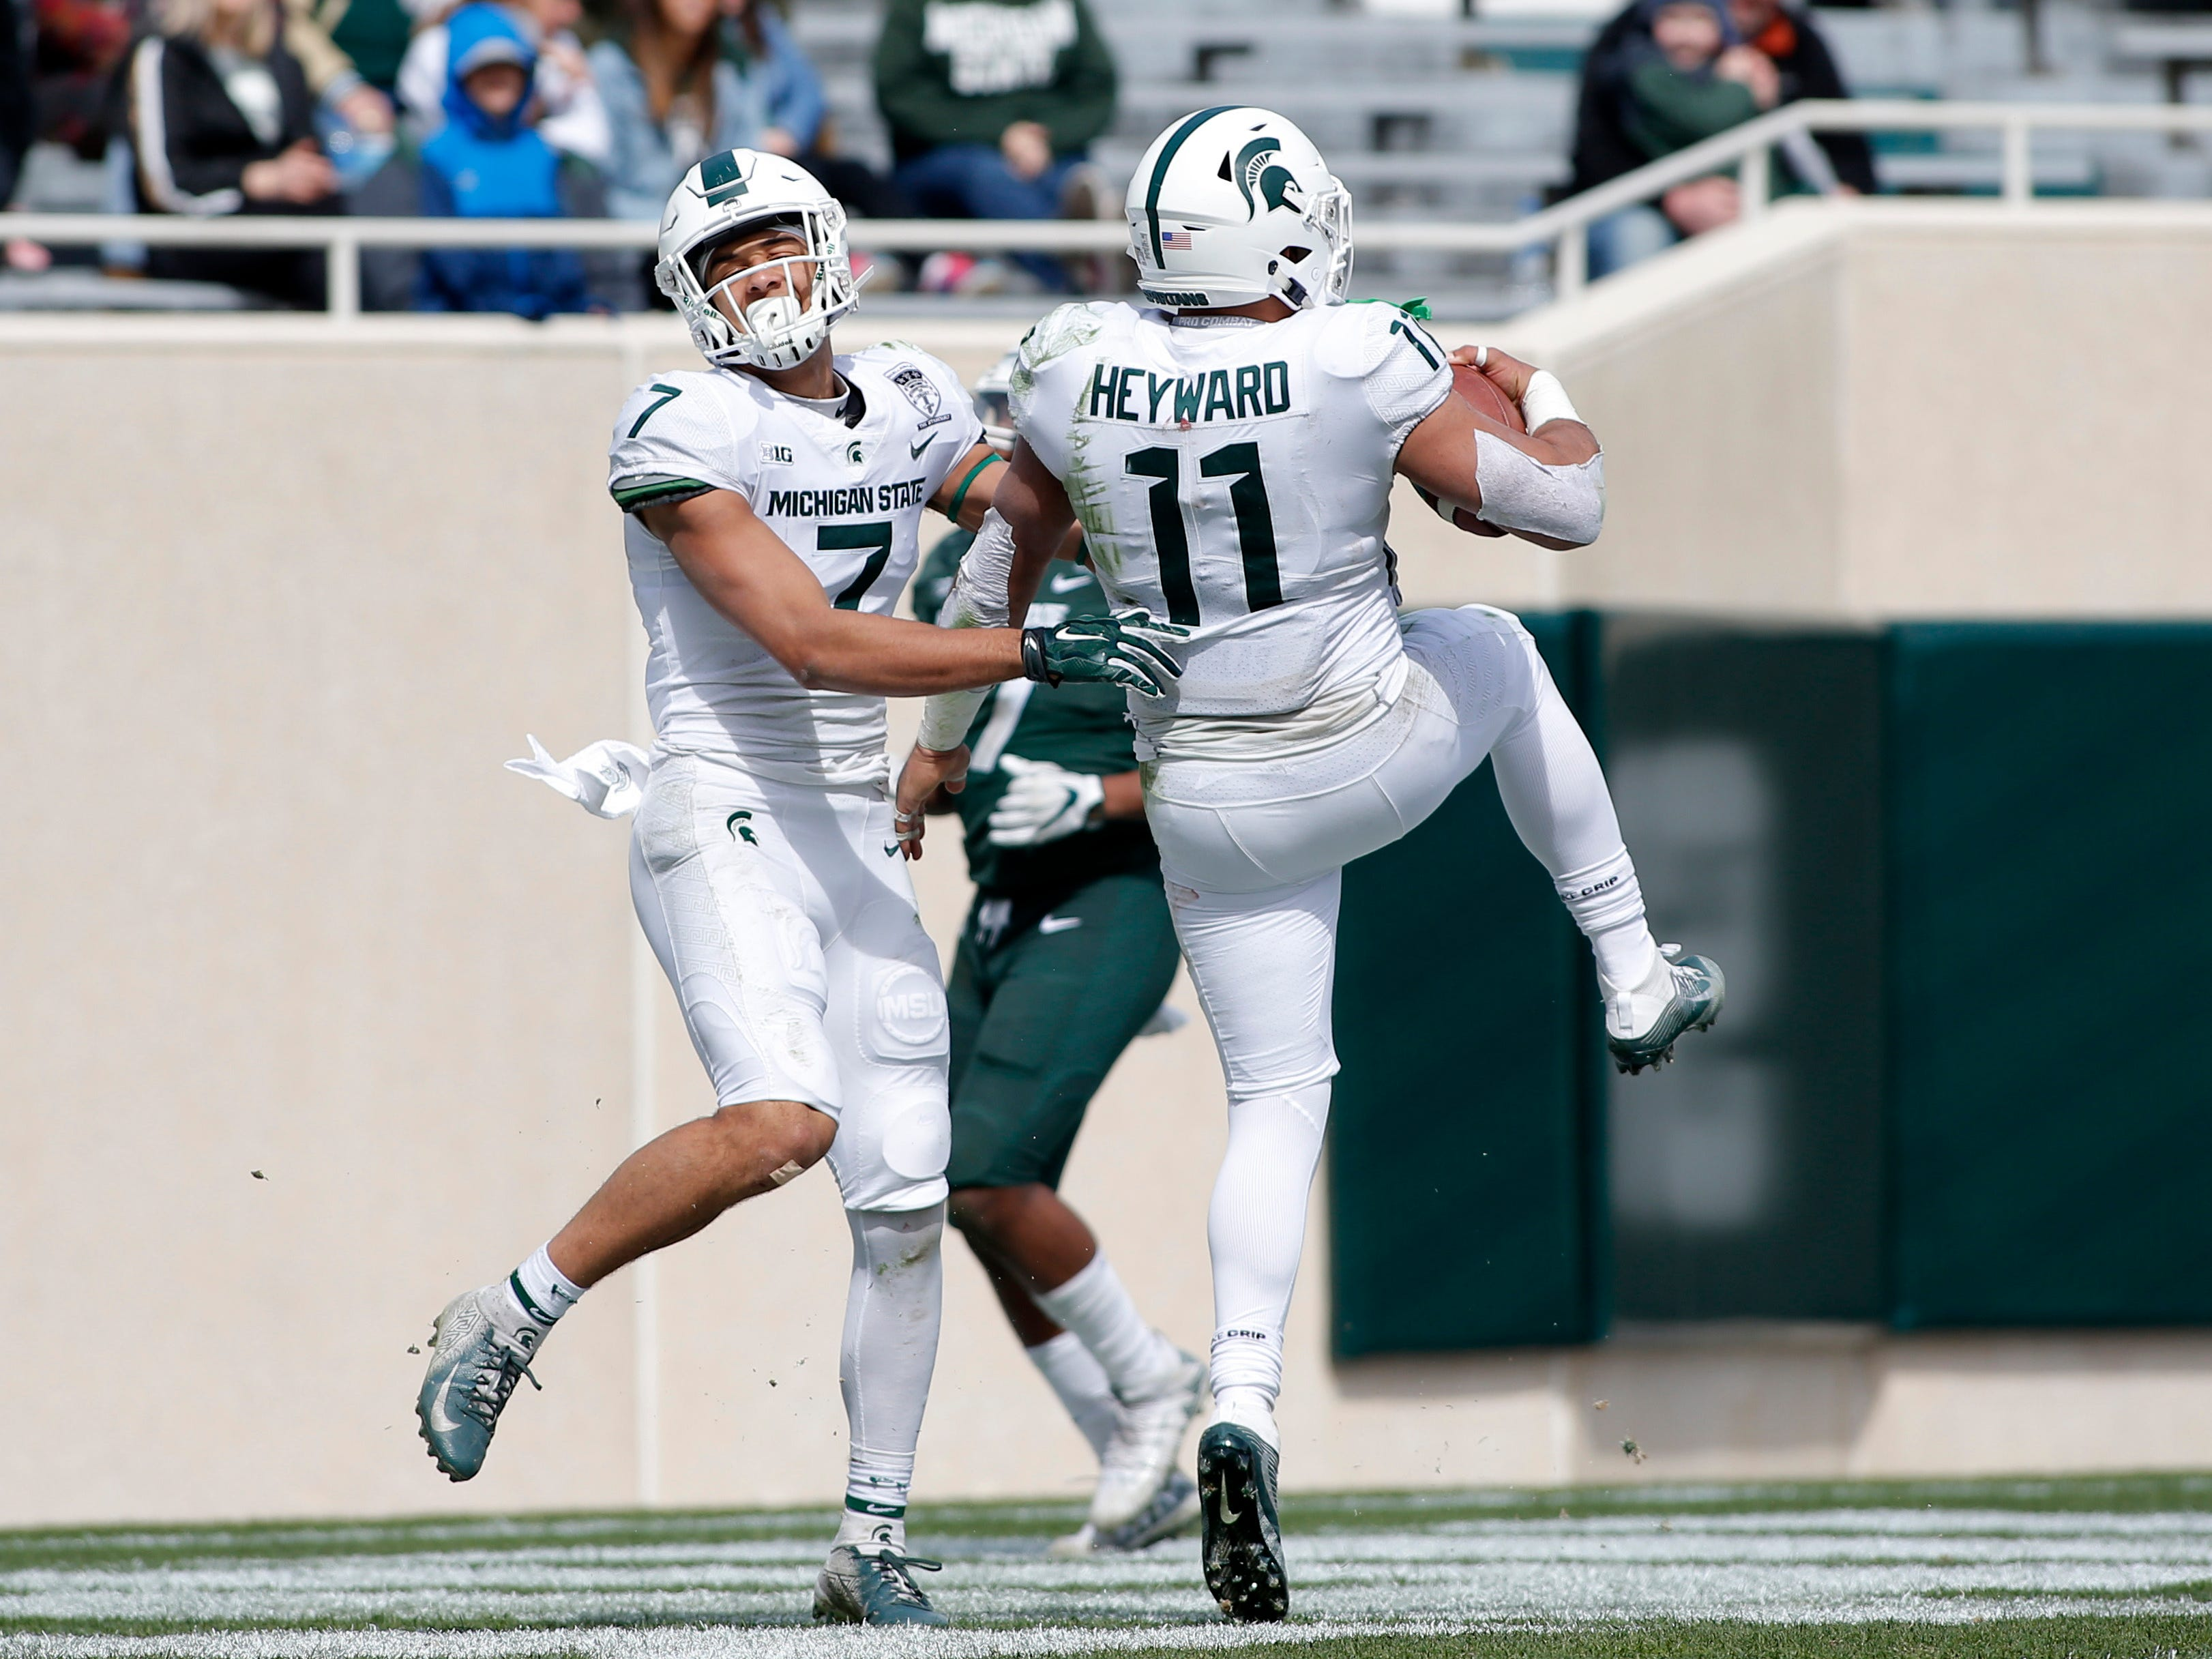 Michigan State's Connor Heyward, right, and Cody White (7) celebrate Heyward's touchdown during an NCAA college football spring scrimmage game, Saturday, April 13, 2019, in East Lansing, Mich. (AP Photo/Al Goldis)